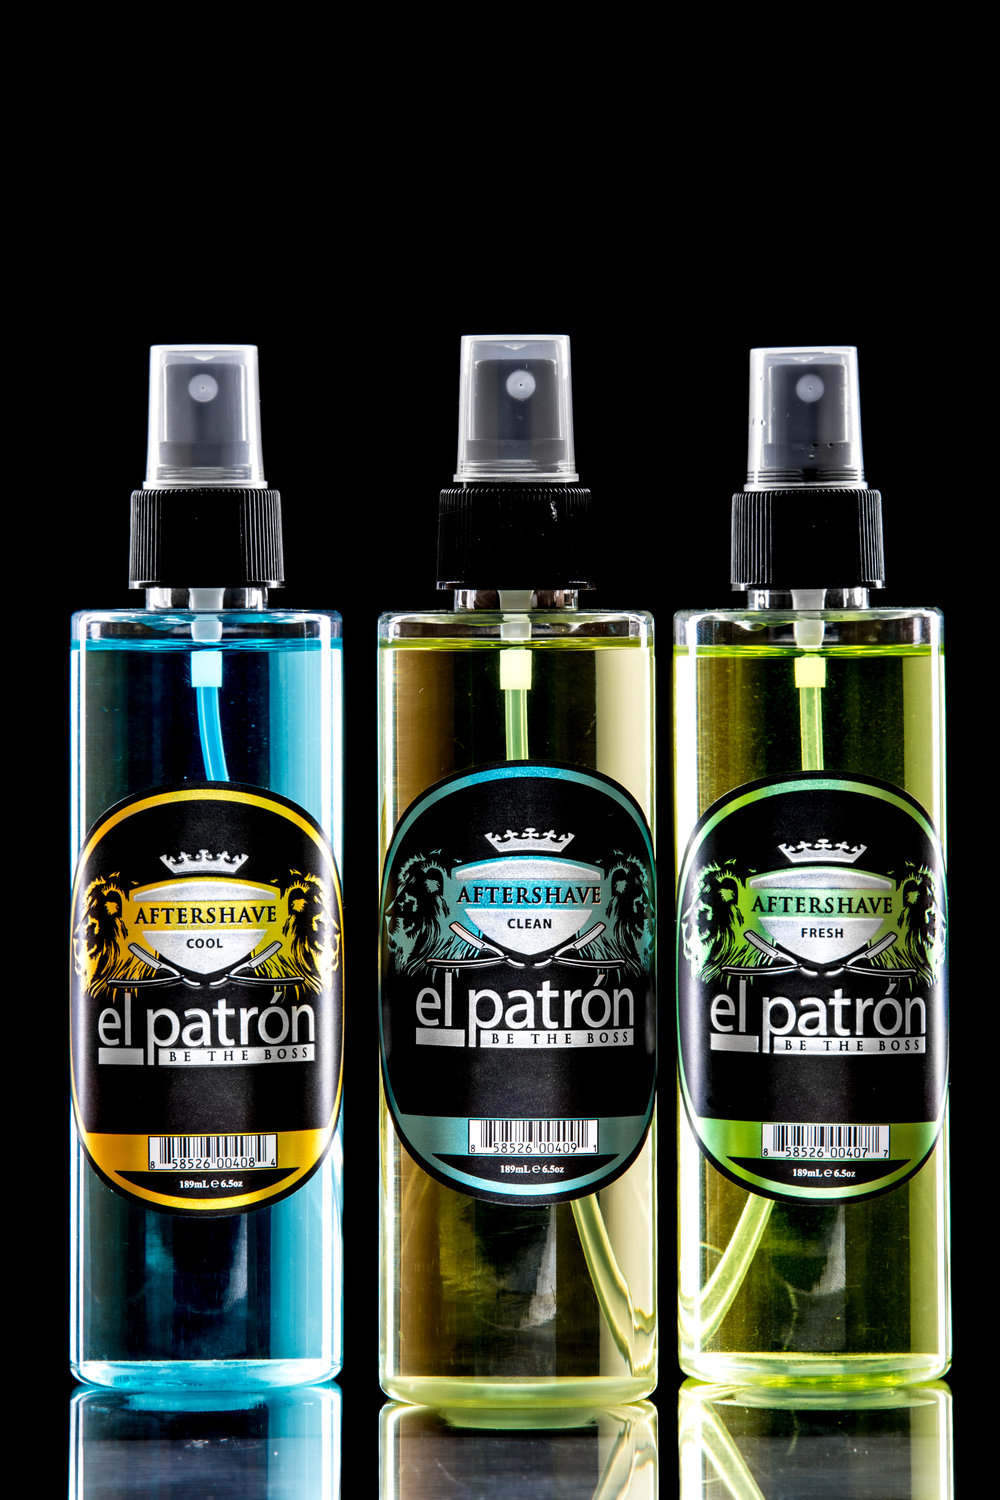 Aftershave Spray Group-0001.jpg